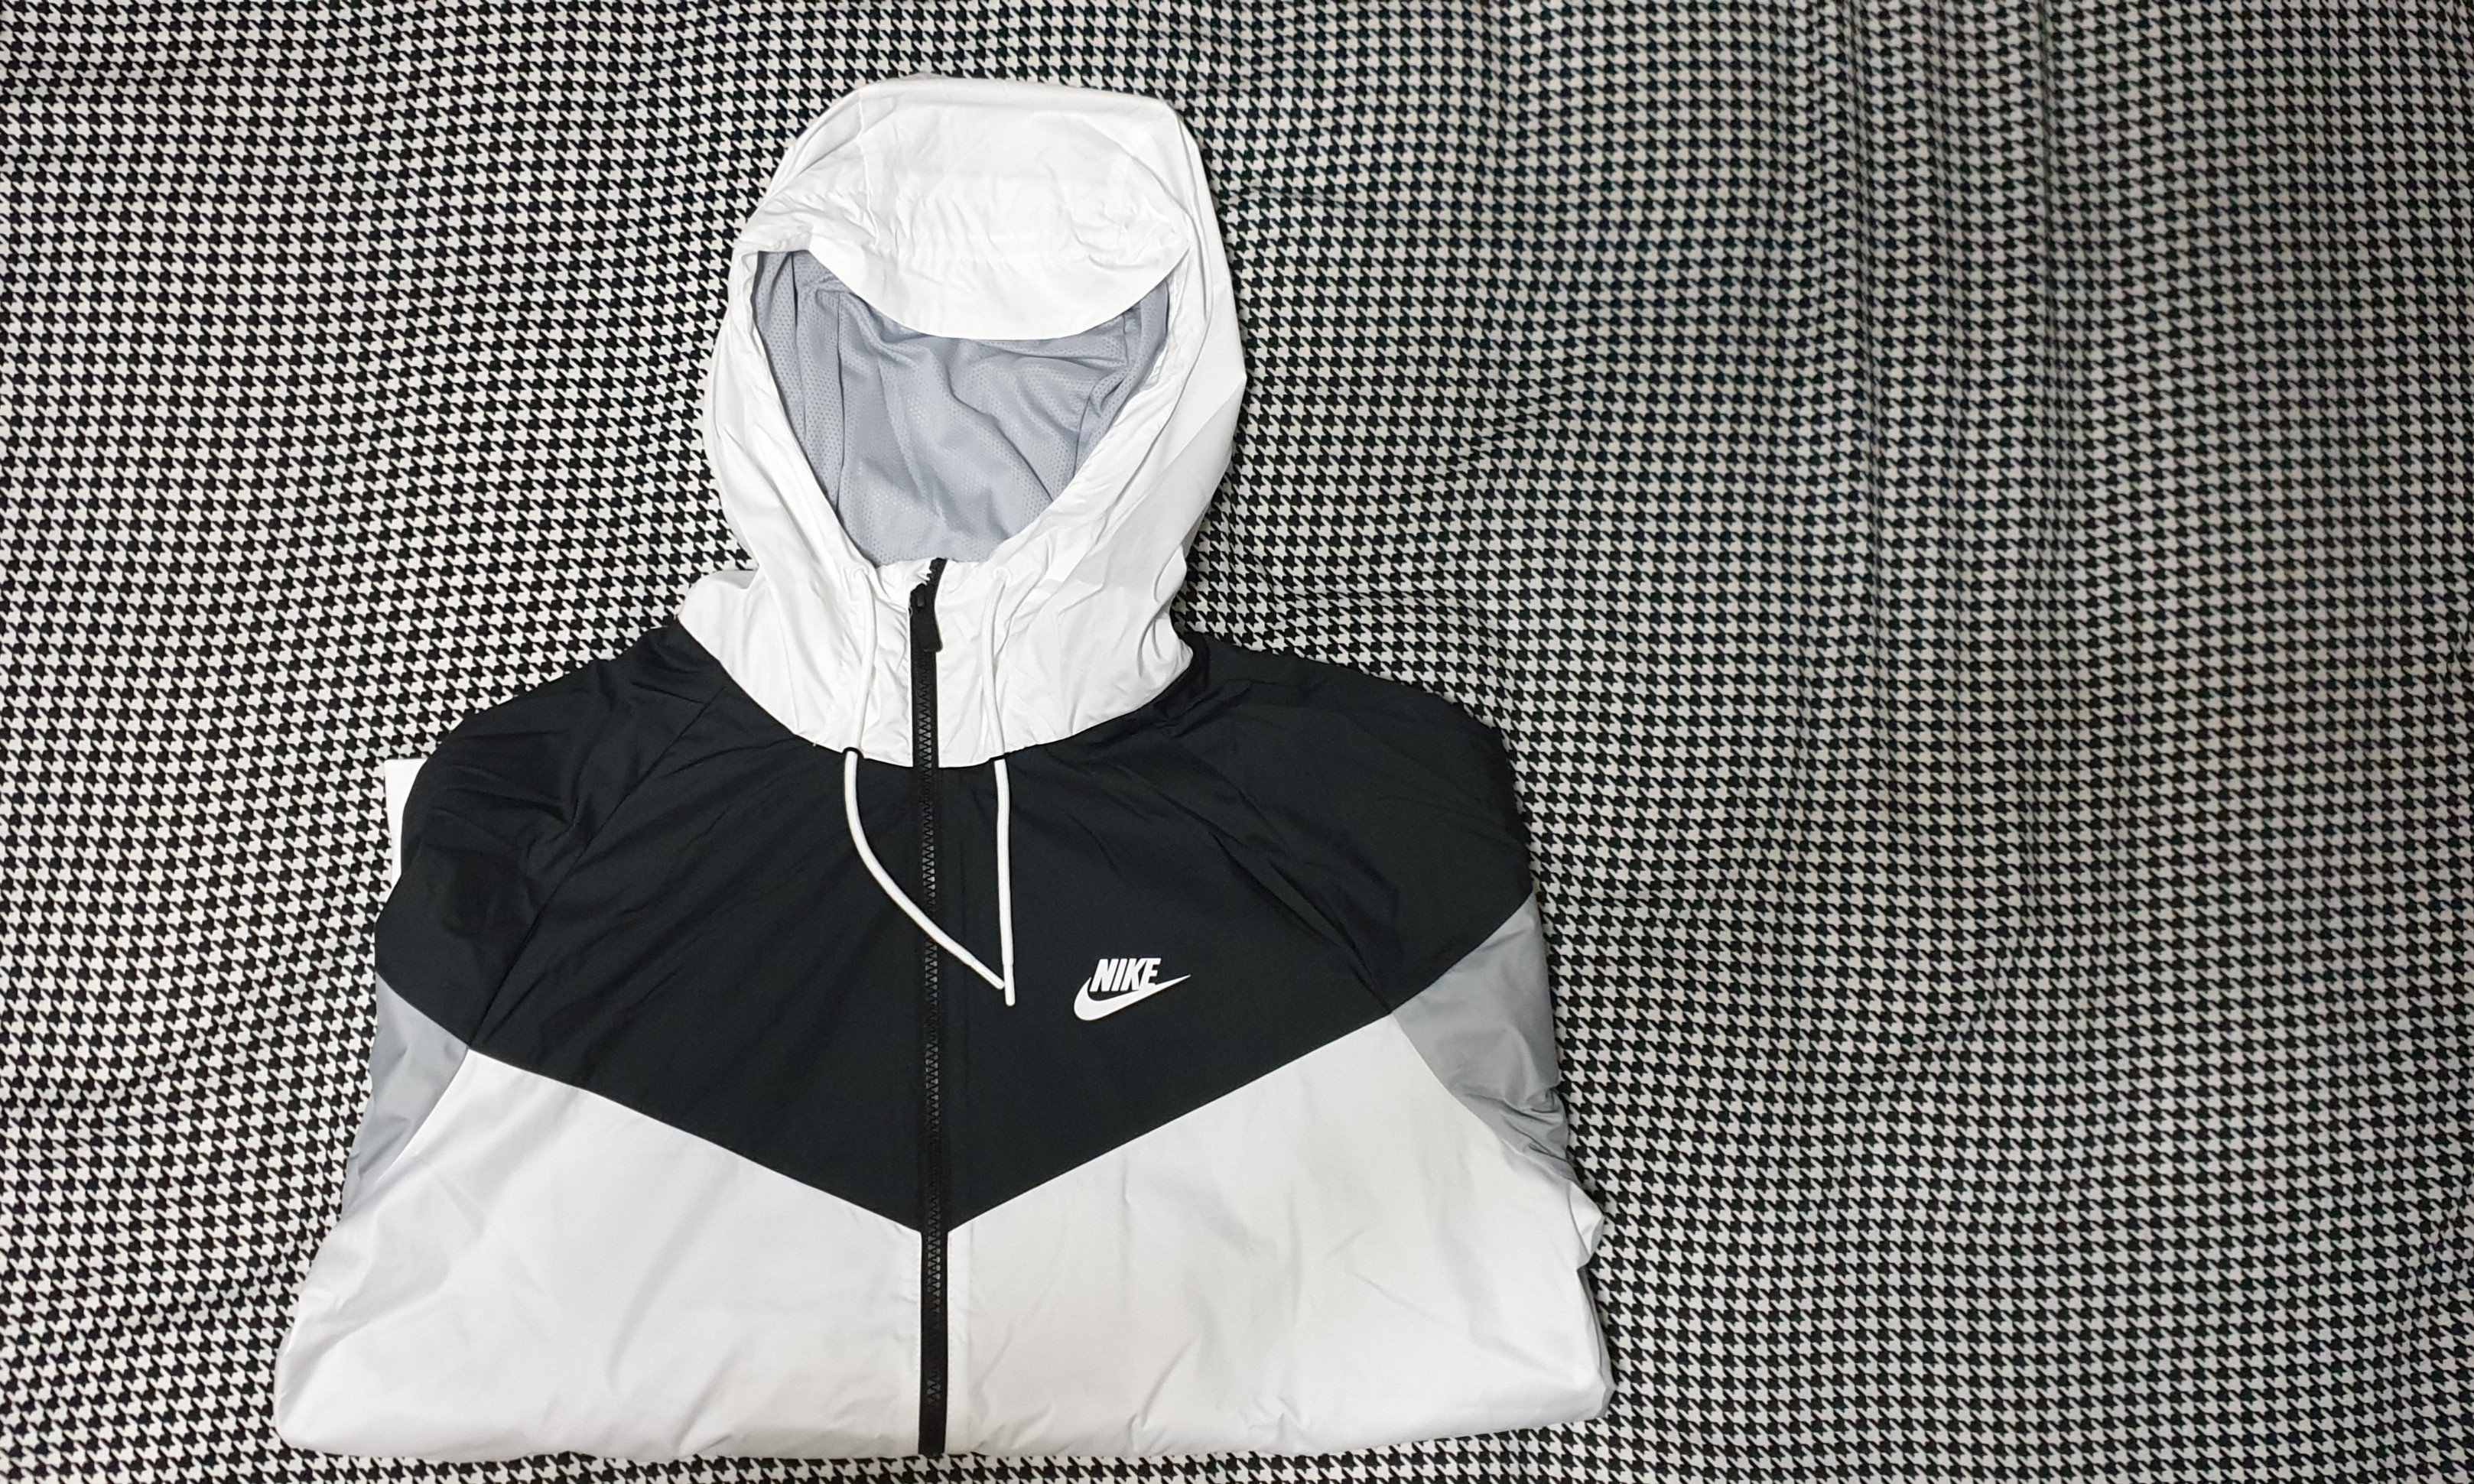 835ae99f7b748 Nike Black and white windrunner jacket, Men's Fashion, Clothes, Tops ...